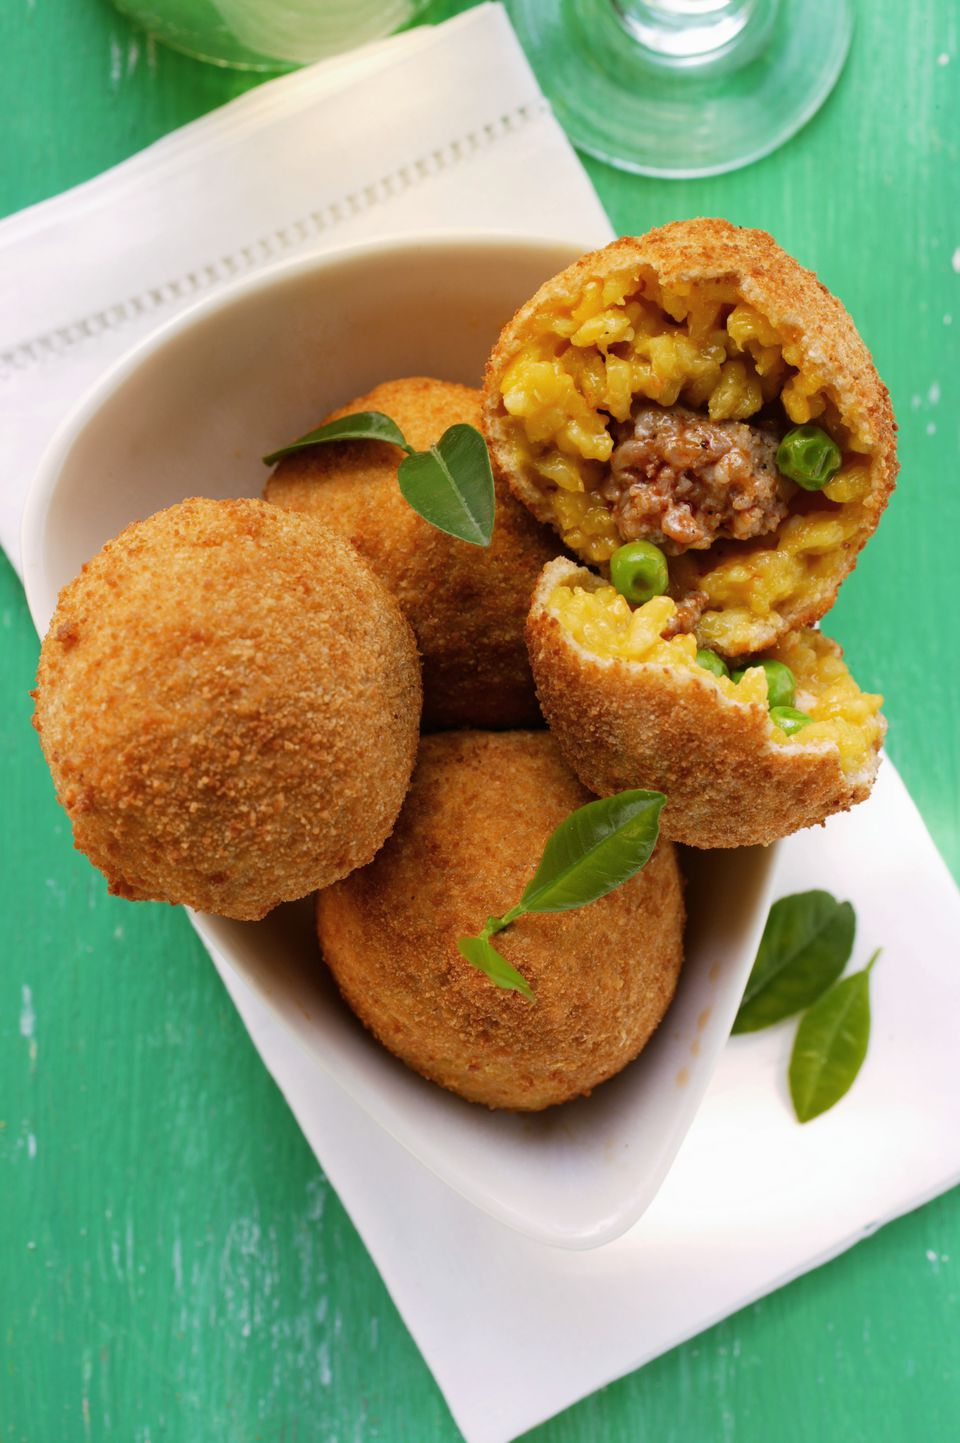 Arancini, Sicilian Rice Balls Stuffed with Meat Sauce and Peas